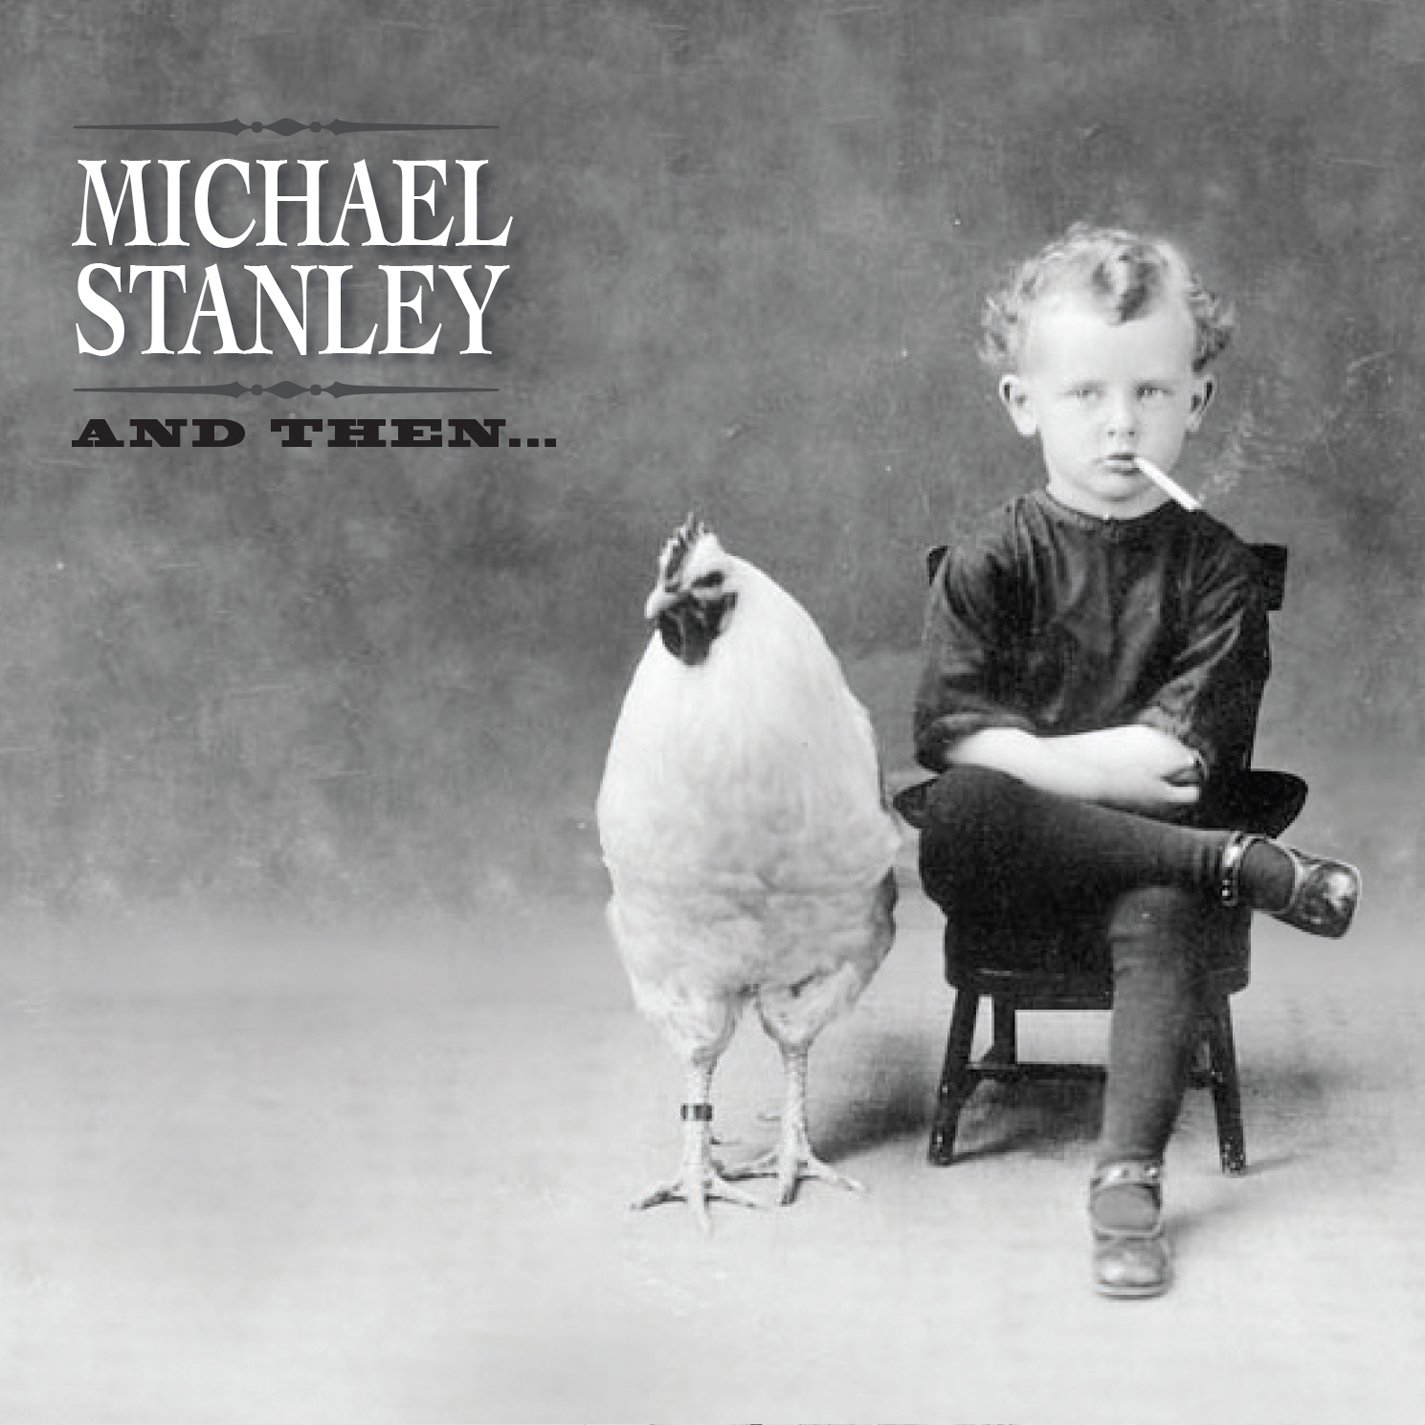 MICHAEL STANLEY And Then...